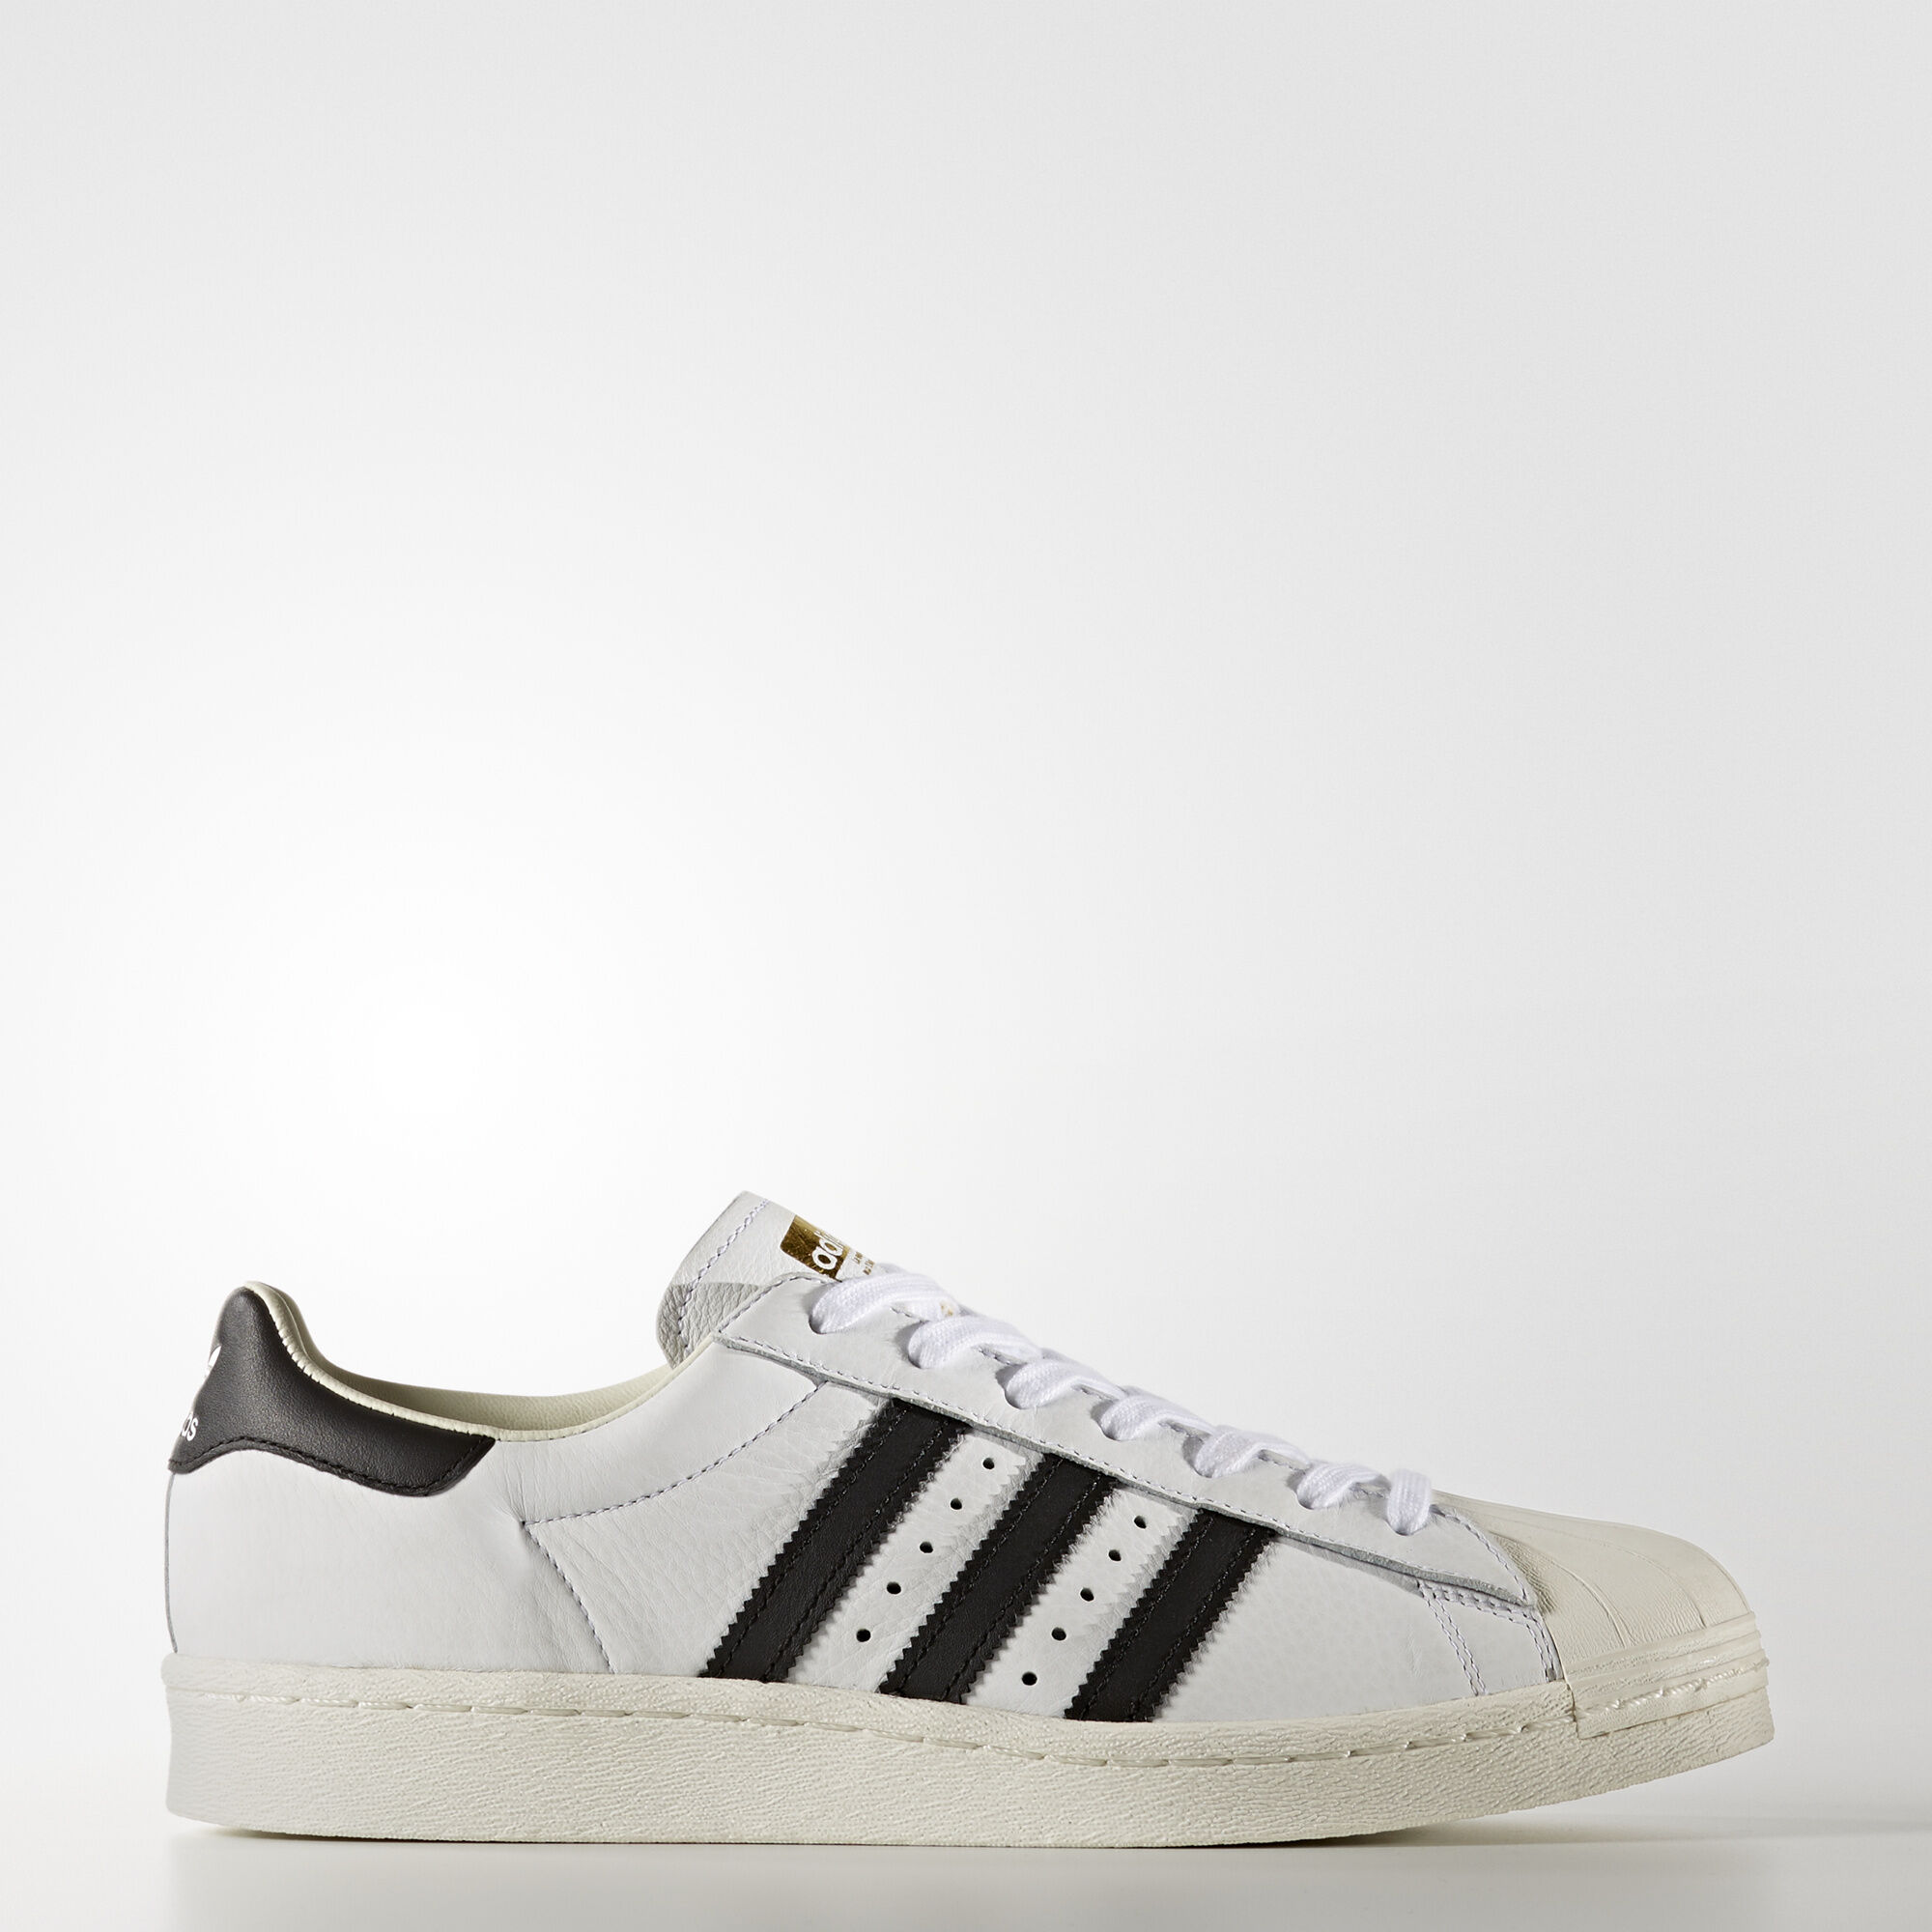 adidas - Superstar Boost Shoes Footwear White/Core Black/Gold Metallic  BB0188. Men Originals